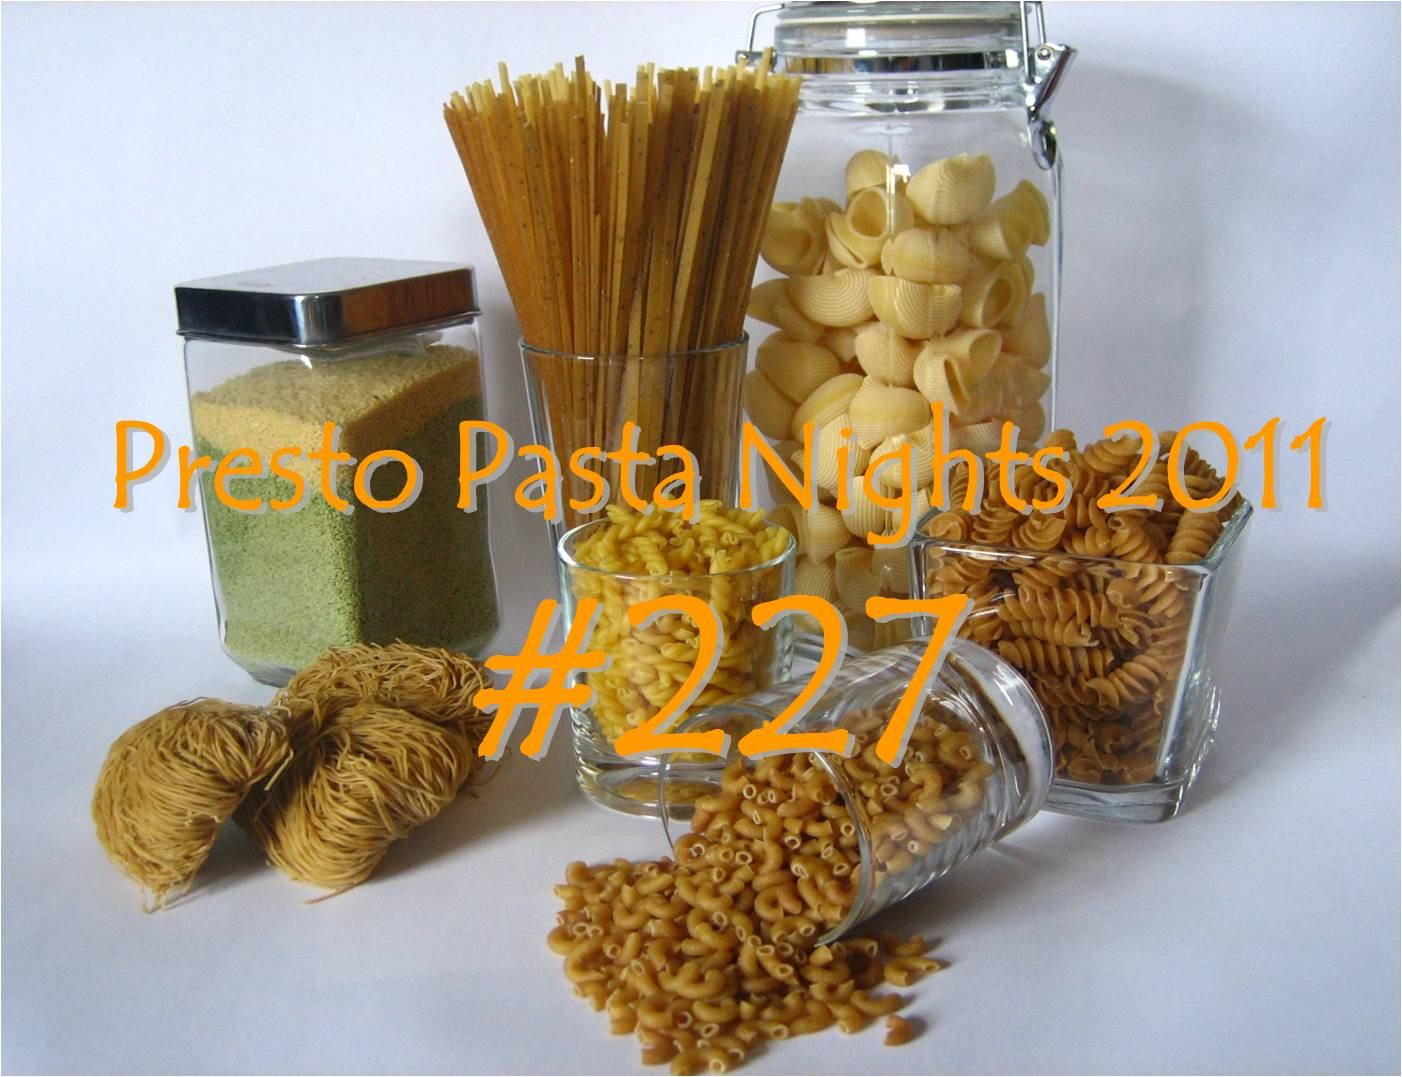 Presto Pasta Nights Coming Up So Send In Your Submissions!